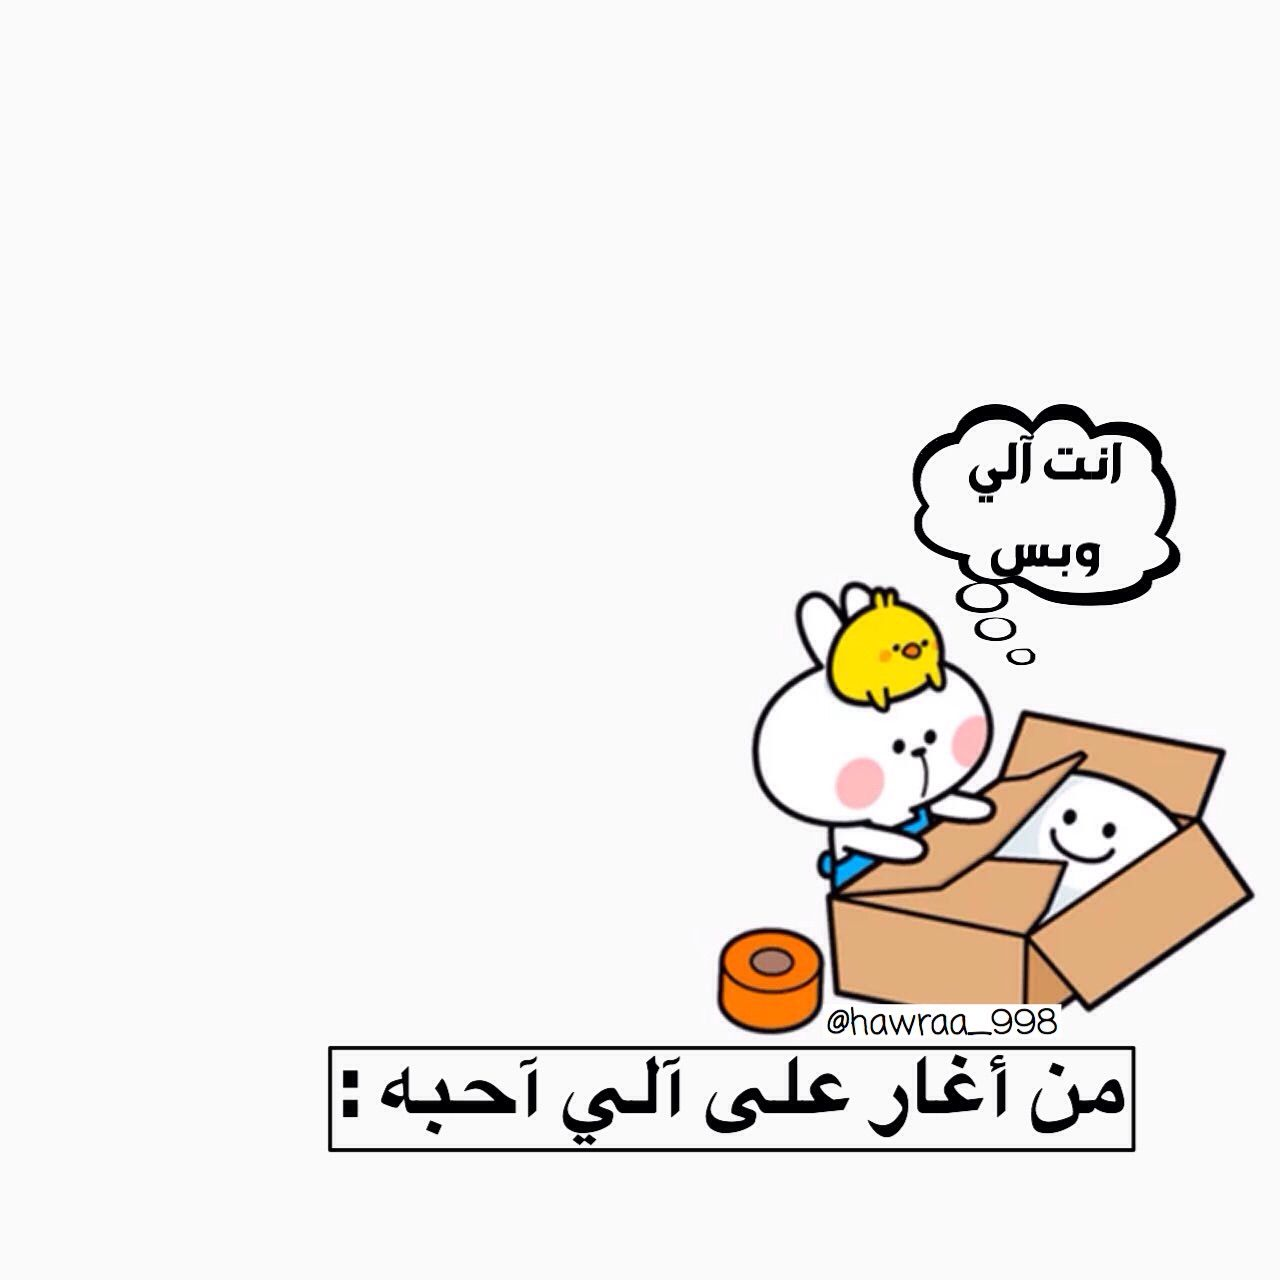 Image Discovered By حـوري Find Images And Videos About Text ح ب And ب ن ات On We Heart It The App In 2021 Funny Study Quotes Fun Quotes Funny Love Smile Quotes